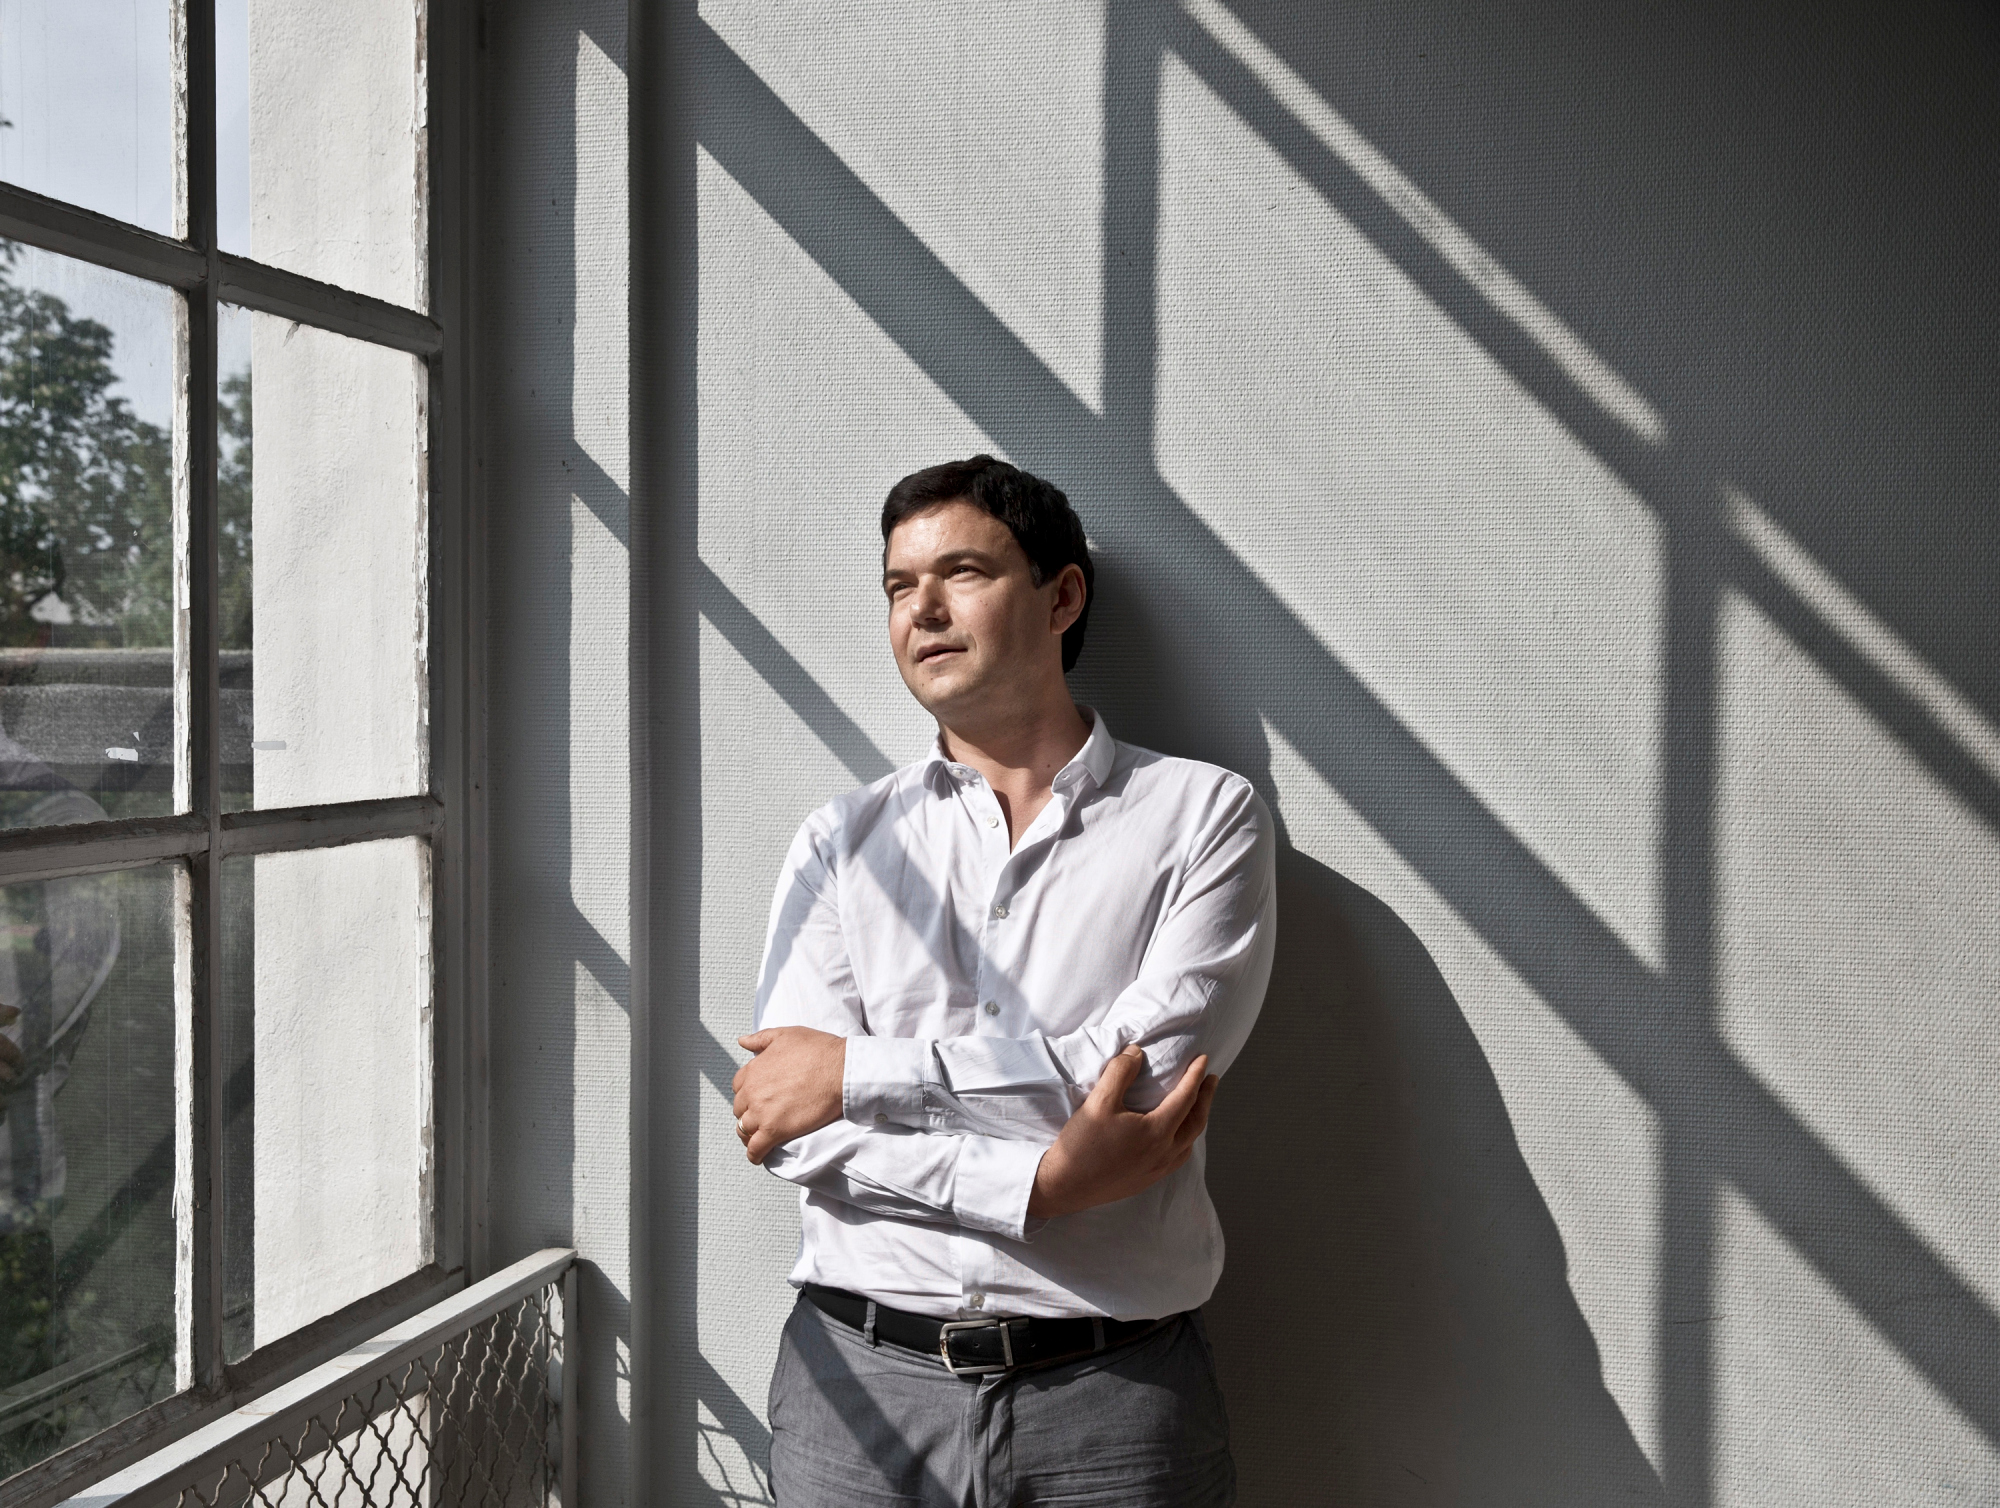 Thomas Piketty, at the Paris School of Economics.